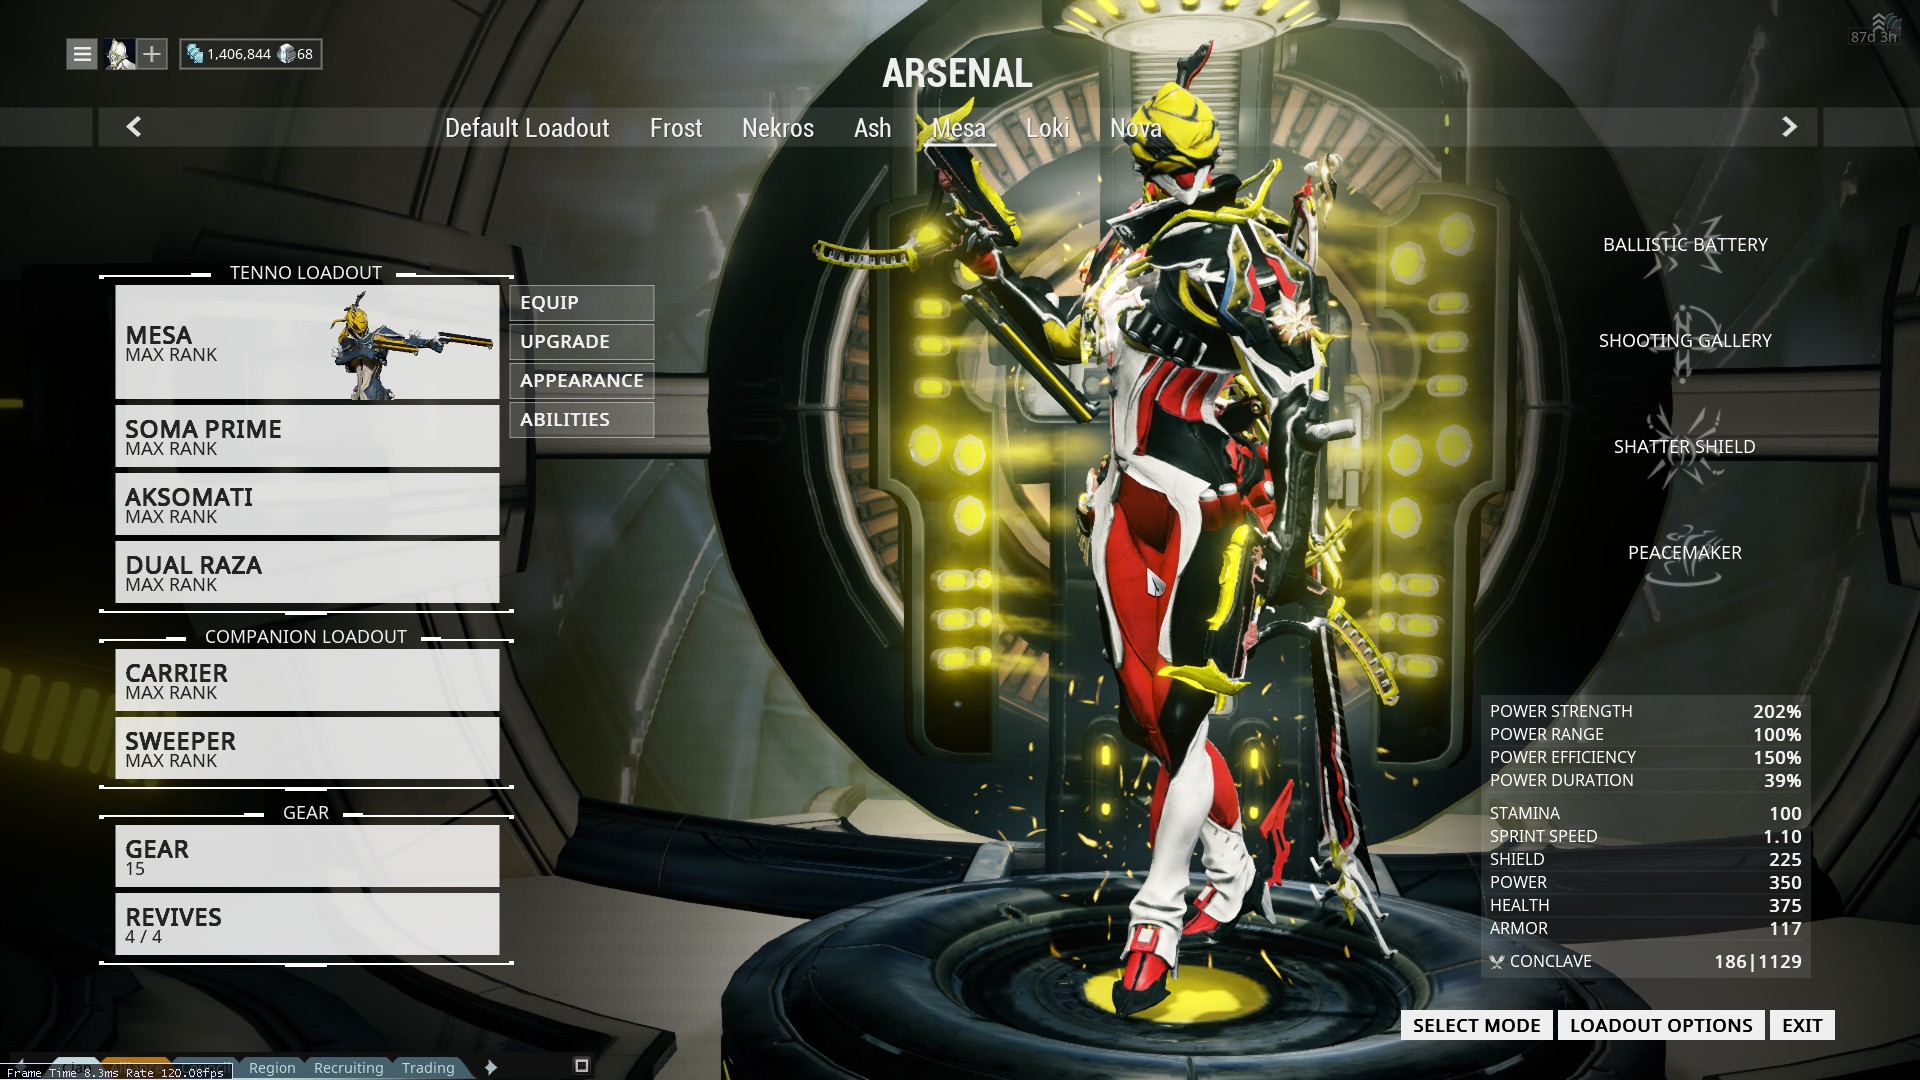 Warframe best weapons 2015 - Current 23 20 June 10 2015